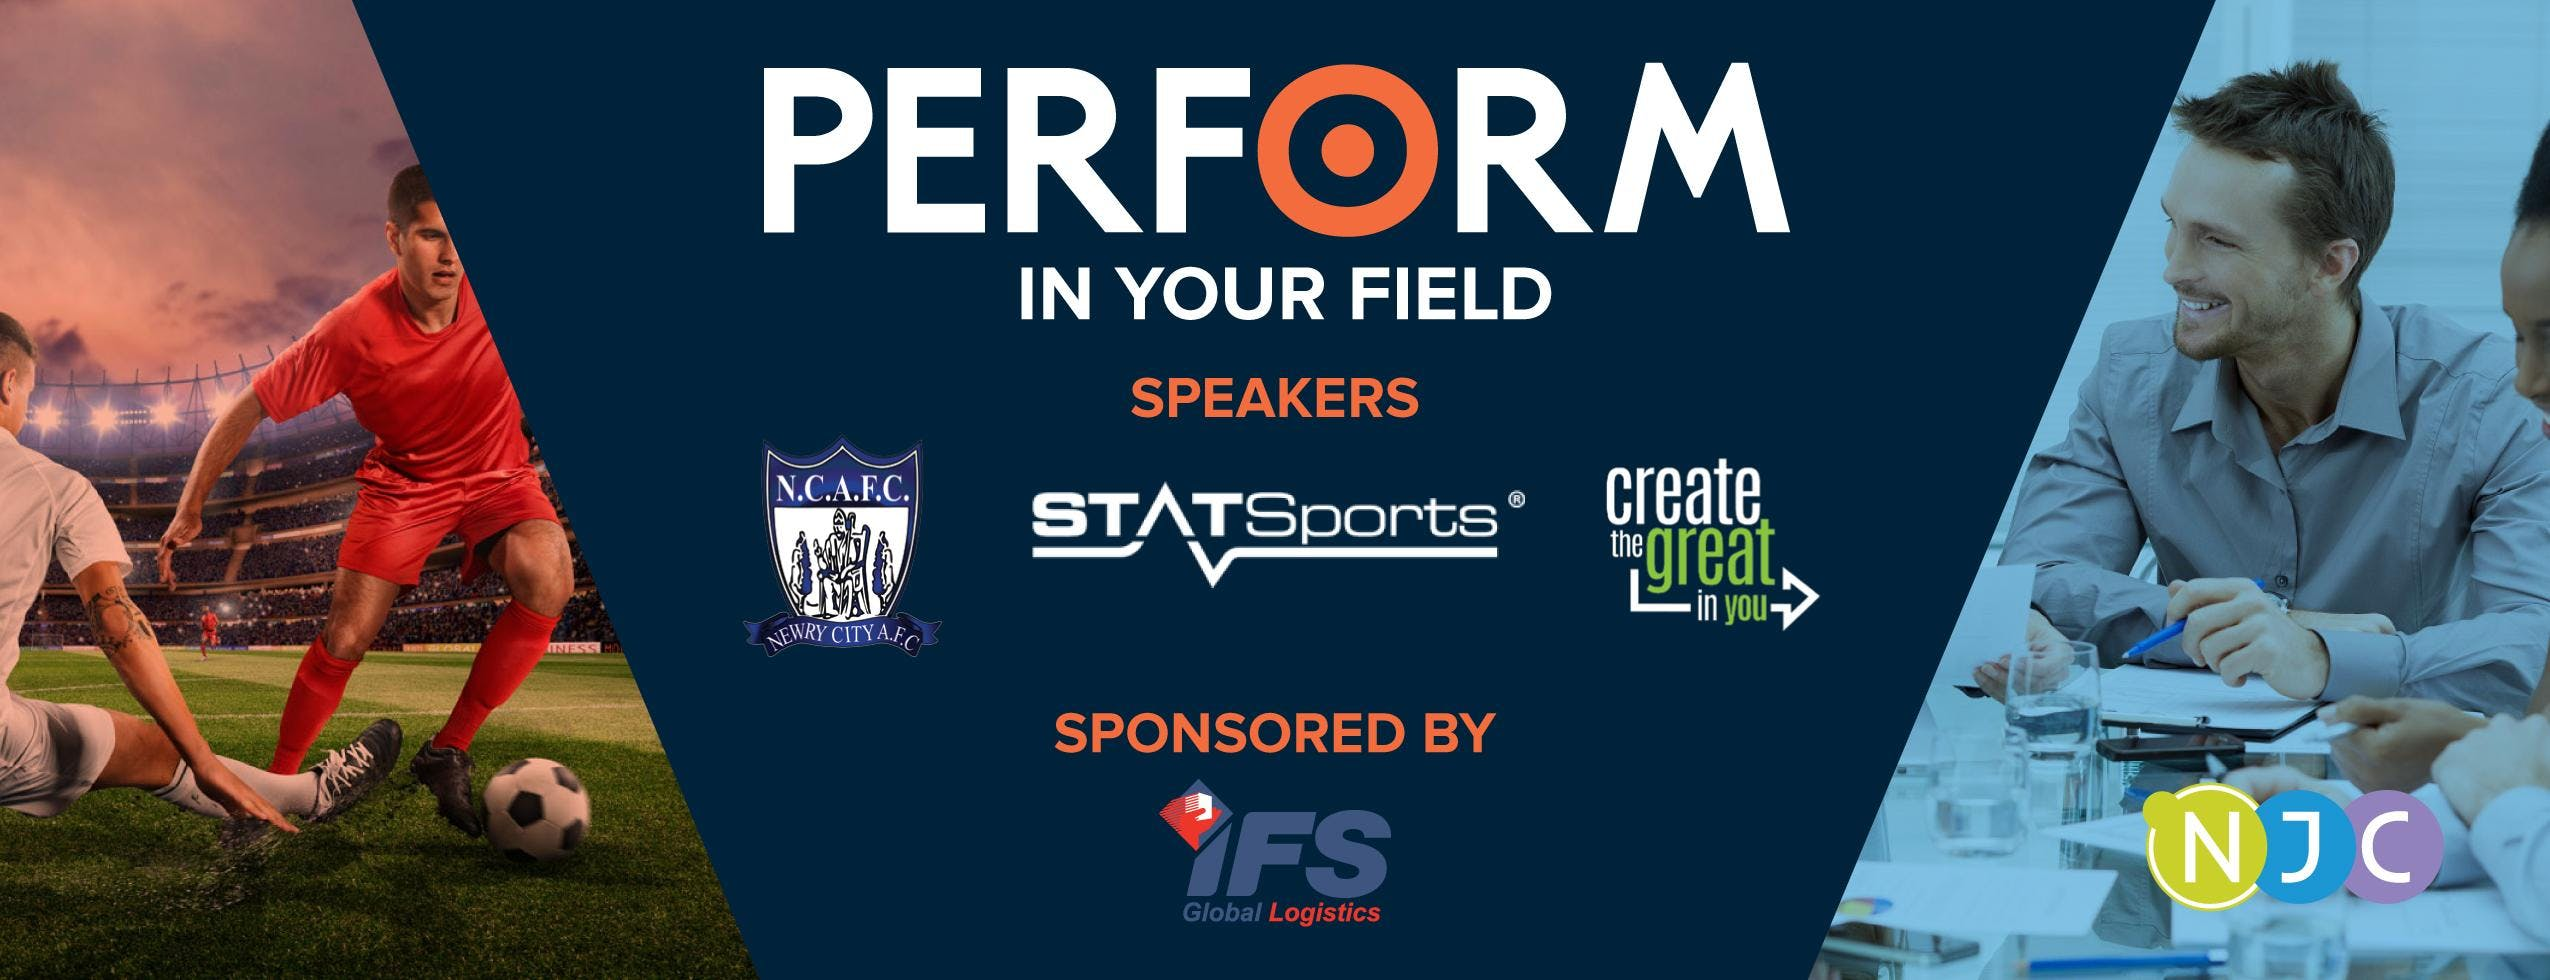 Perform In Your Field